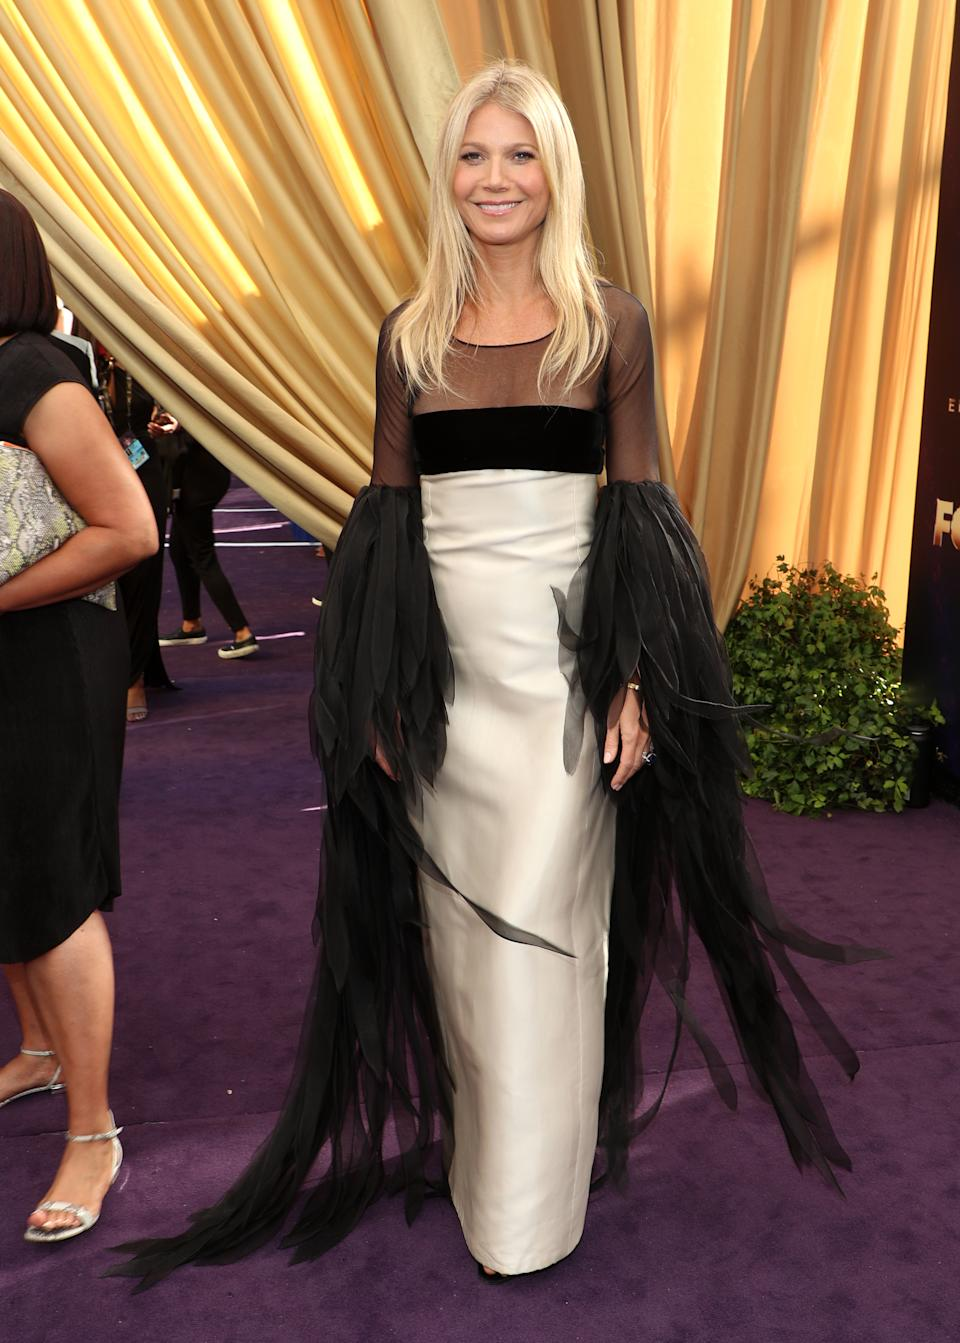 <p>In 2019, Gwyneth Paltrow hit the Emmys red carpet in a vintage 1963 Valentino look. The dramatic sleeves and stiff bodice and skirt were a fashion miss for fans and made for an awkward moment as Paltrow tried to walk across the Emmy stage. (Image via Getty Images)</p>